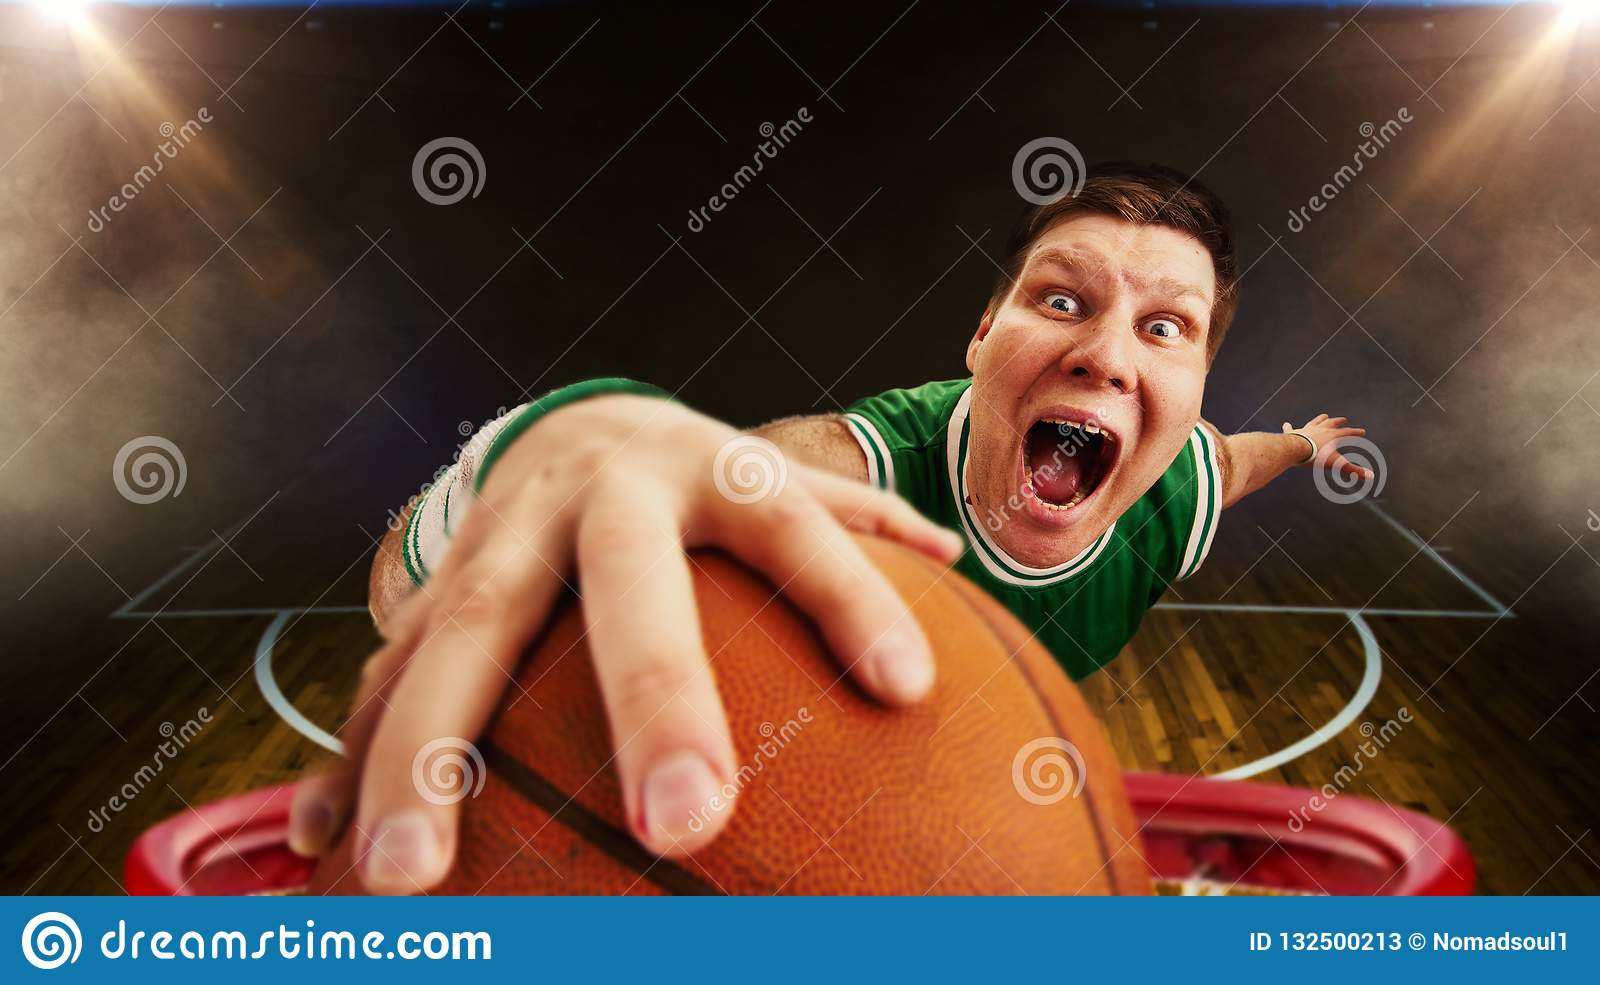 Basketball player throws ball, view from basket